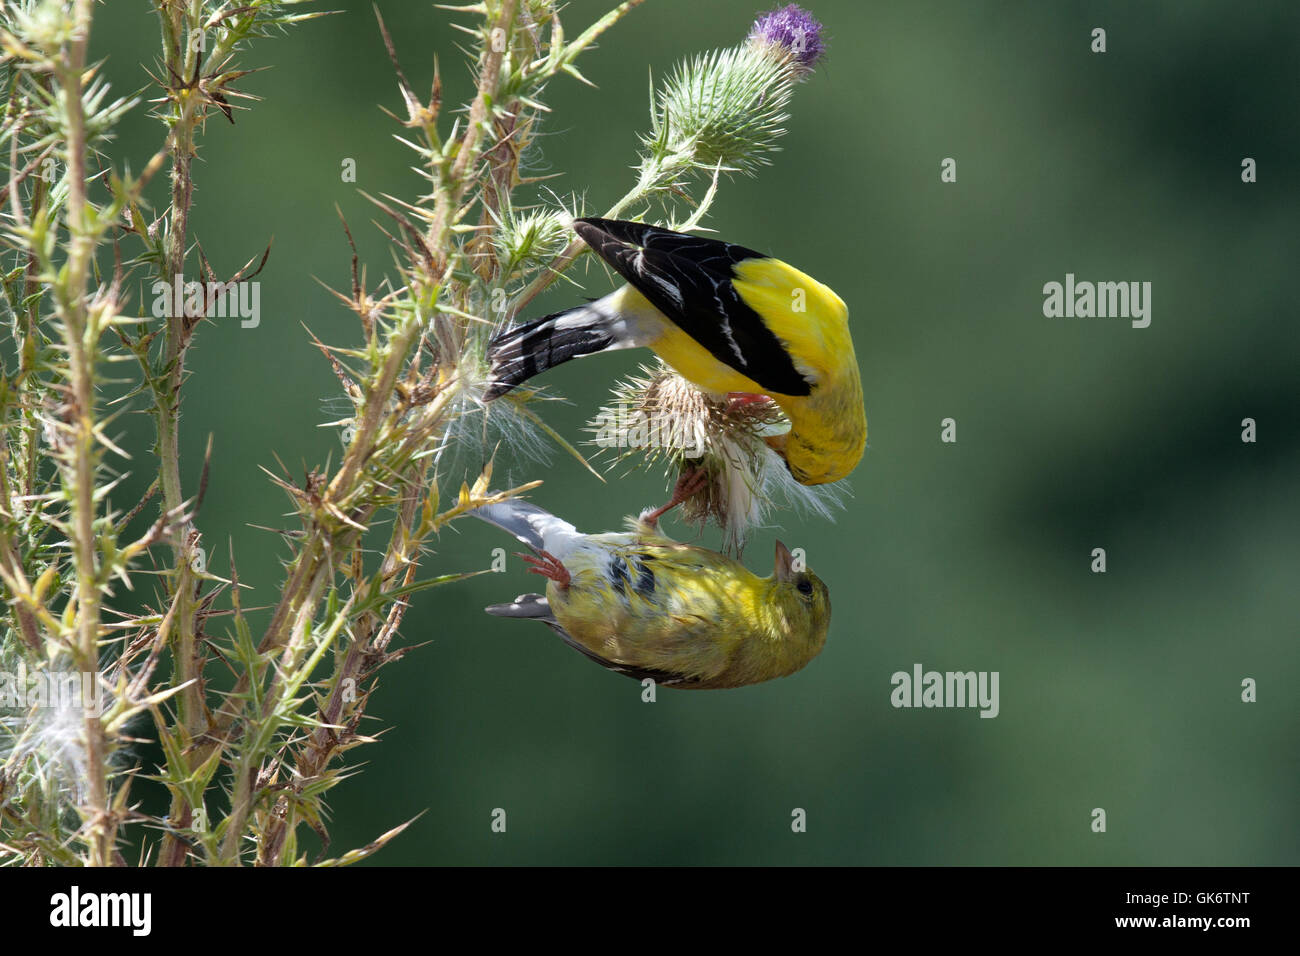 Male and female goldfinches perched on thistle plant - Stock Image